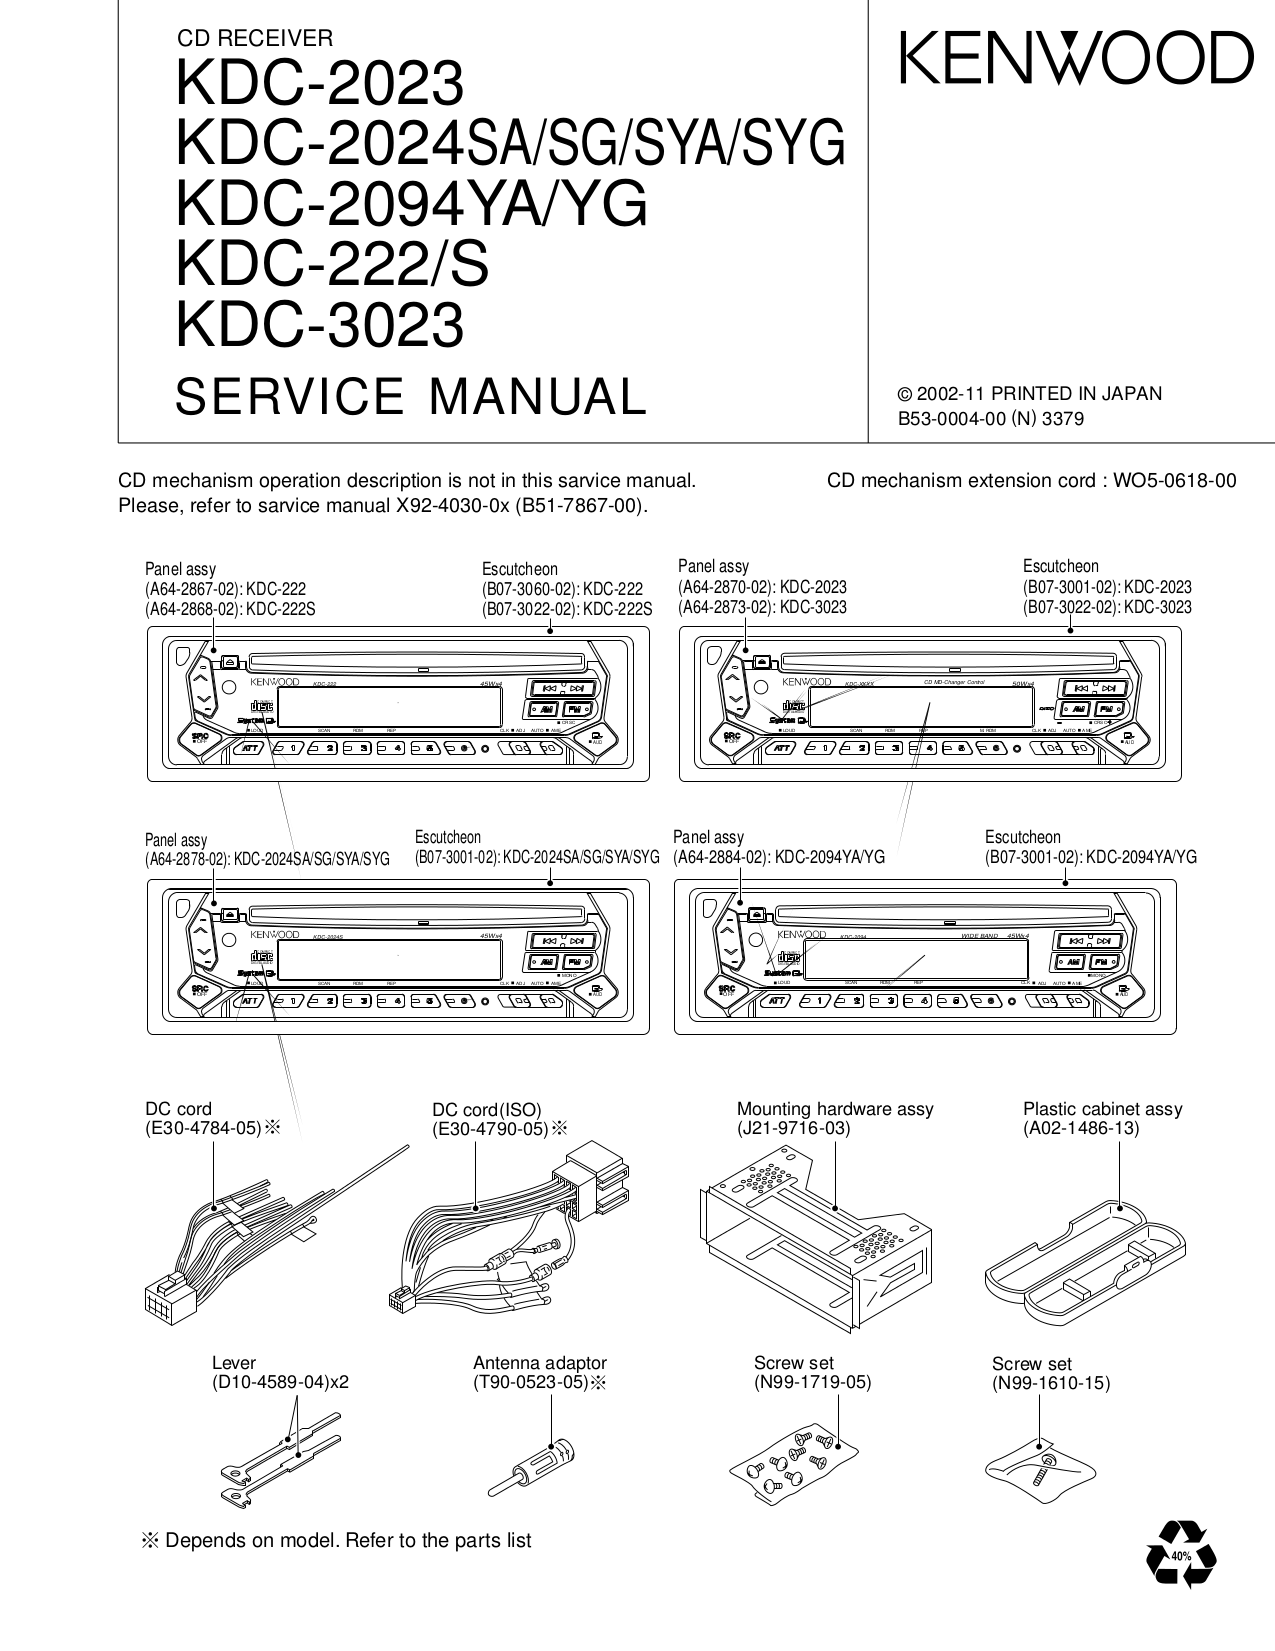 Kdc 348u wiring diagram wiring color coding free wiring diagrams wiring diagram kdc2023 2024 2094 222 3023pdf 0resize6652c861 kenwood sciox Image collections